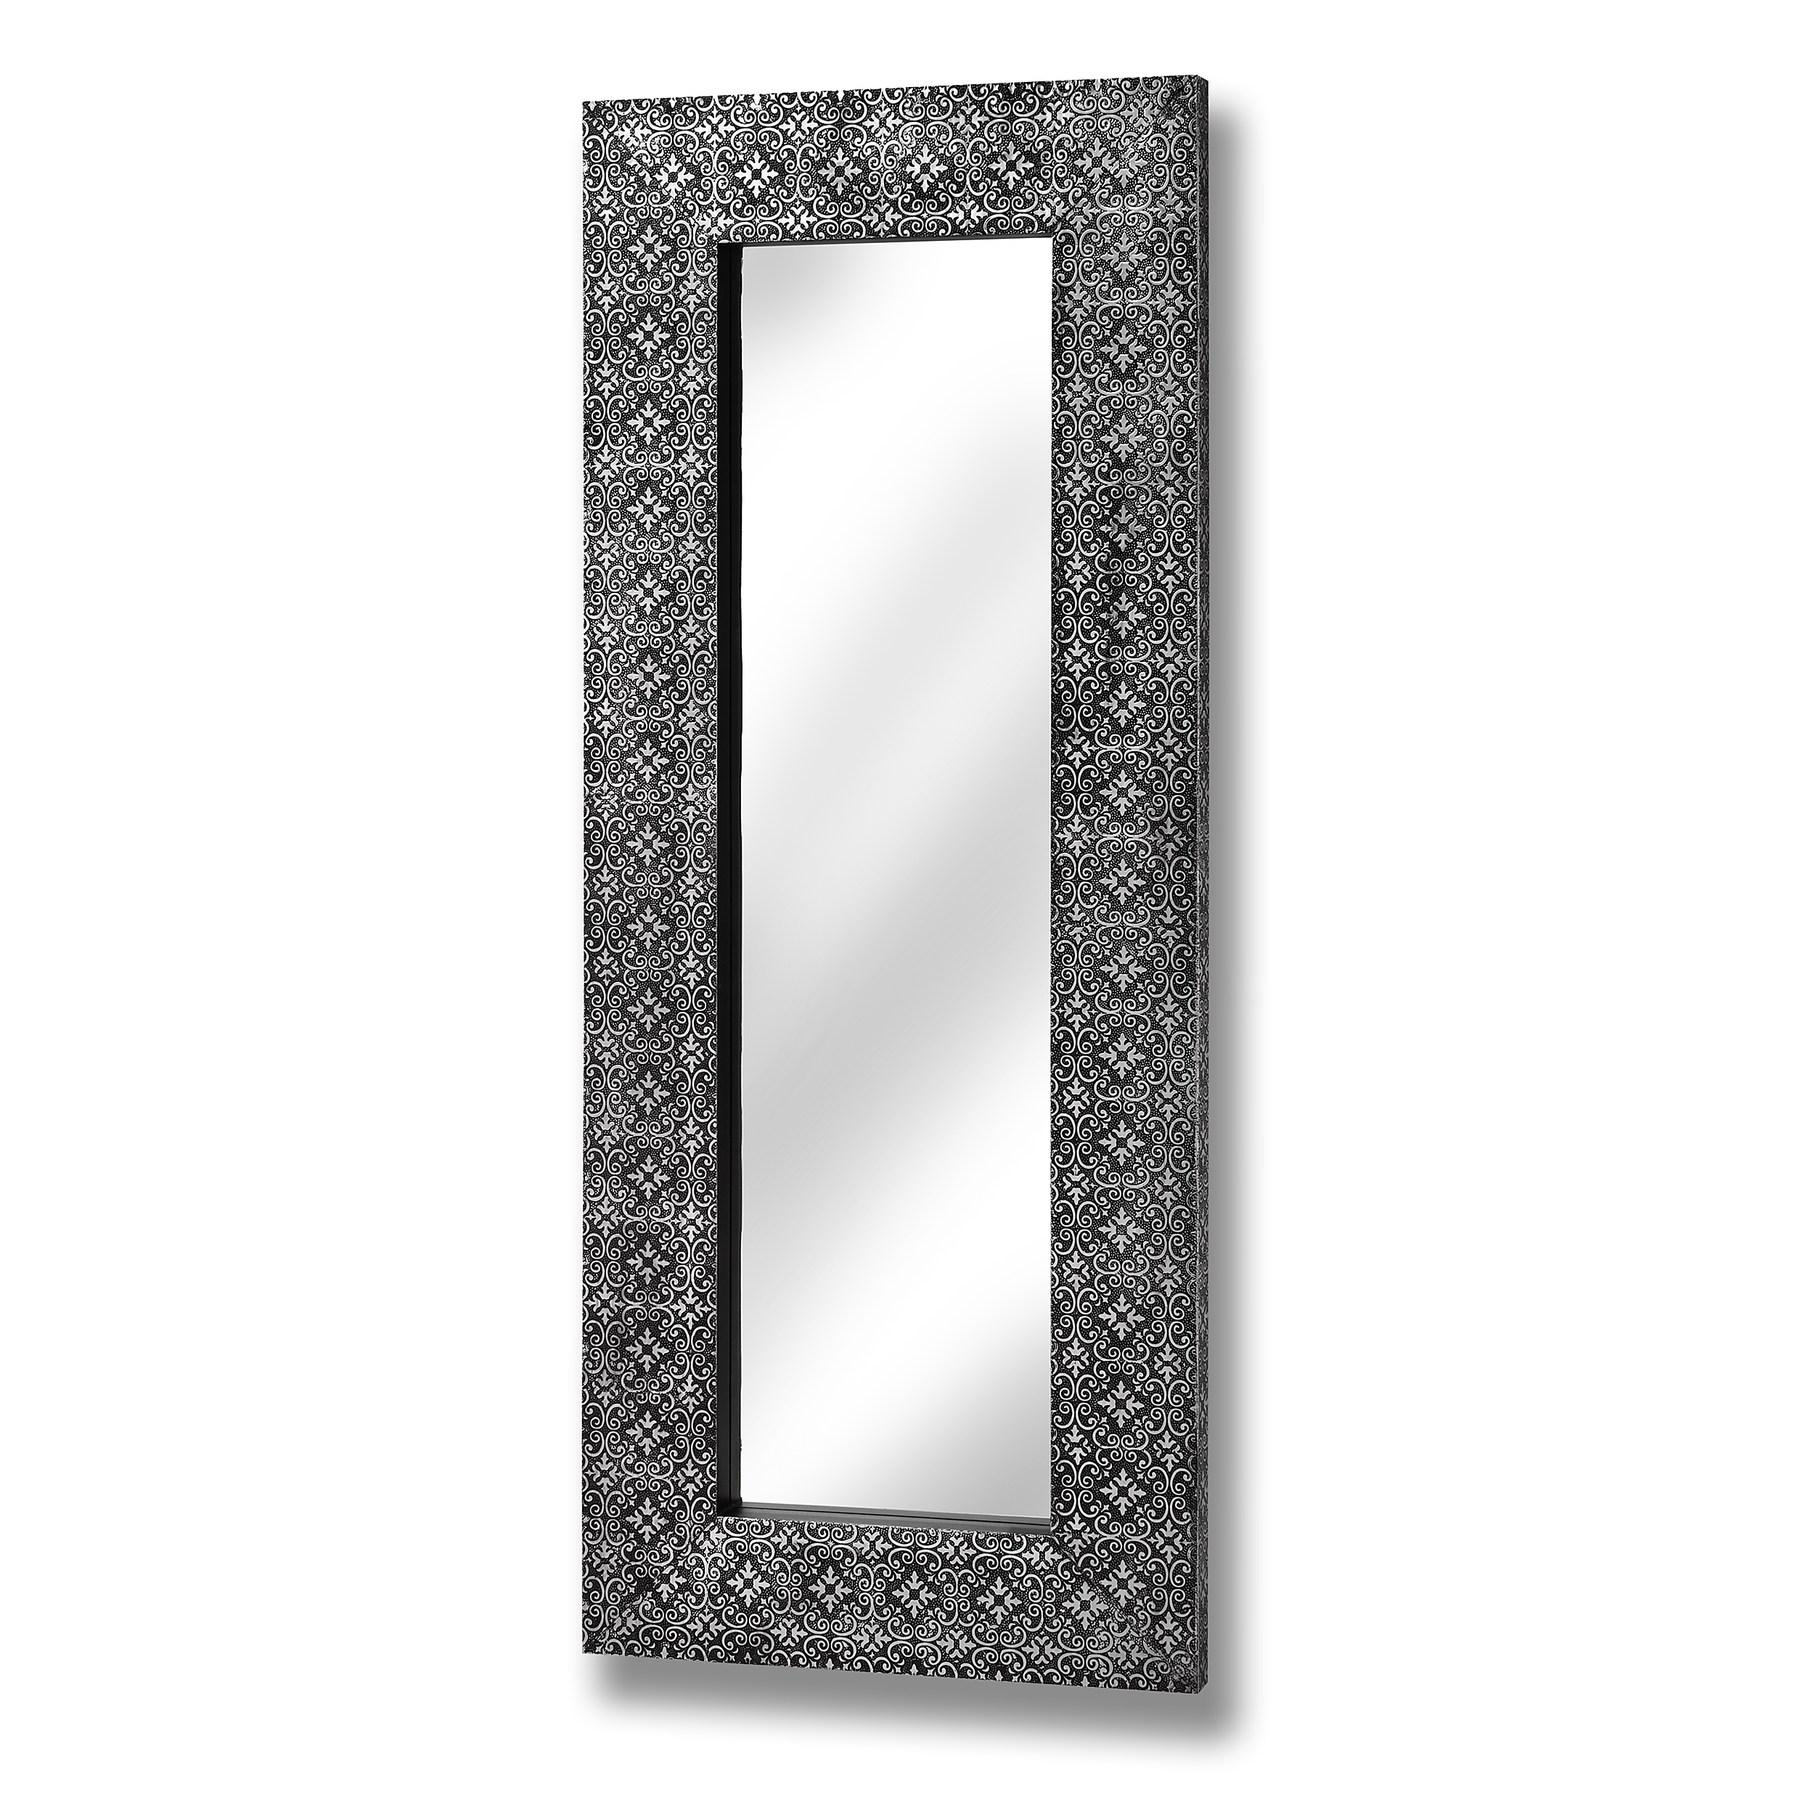 Large, Small, Floor, Vanity & Dressing Table Mirrors | Melody Pertaining To Silver Long Mirror (Image 11 of 20)